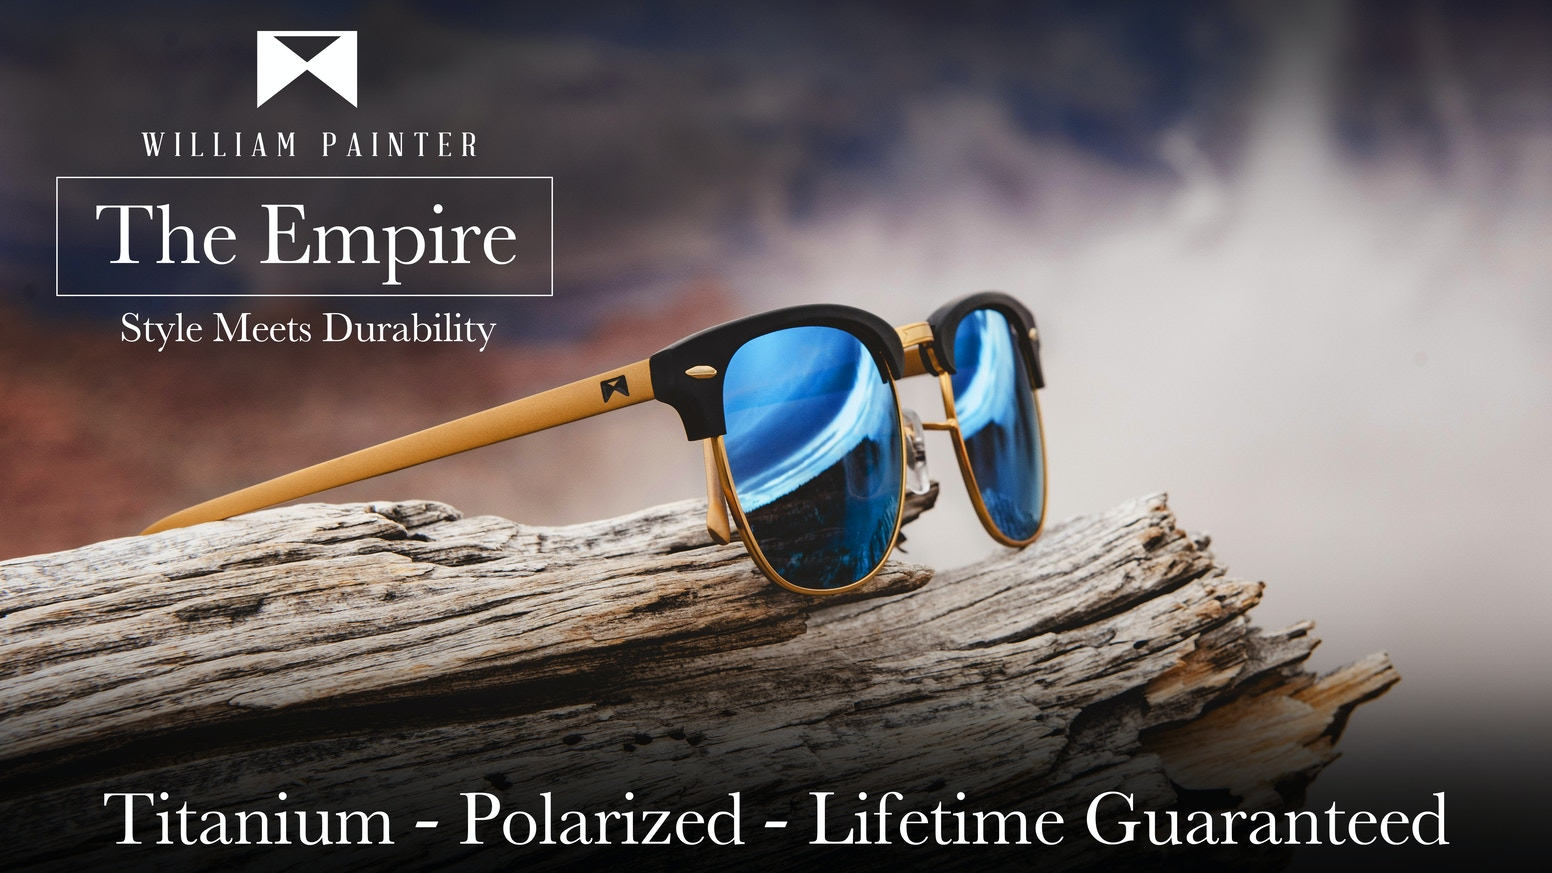 William Painter's The Empire - Aerospace Grade Titanium frame, Next-Gen polarized lenses, all backed by our Lifetime Guarantee.